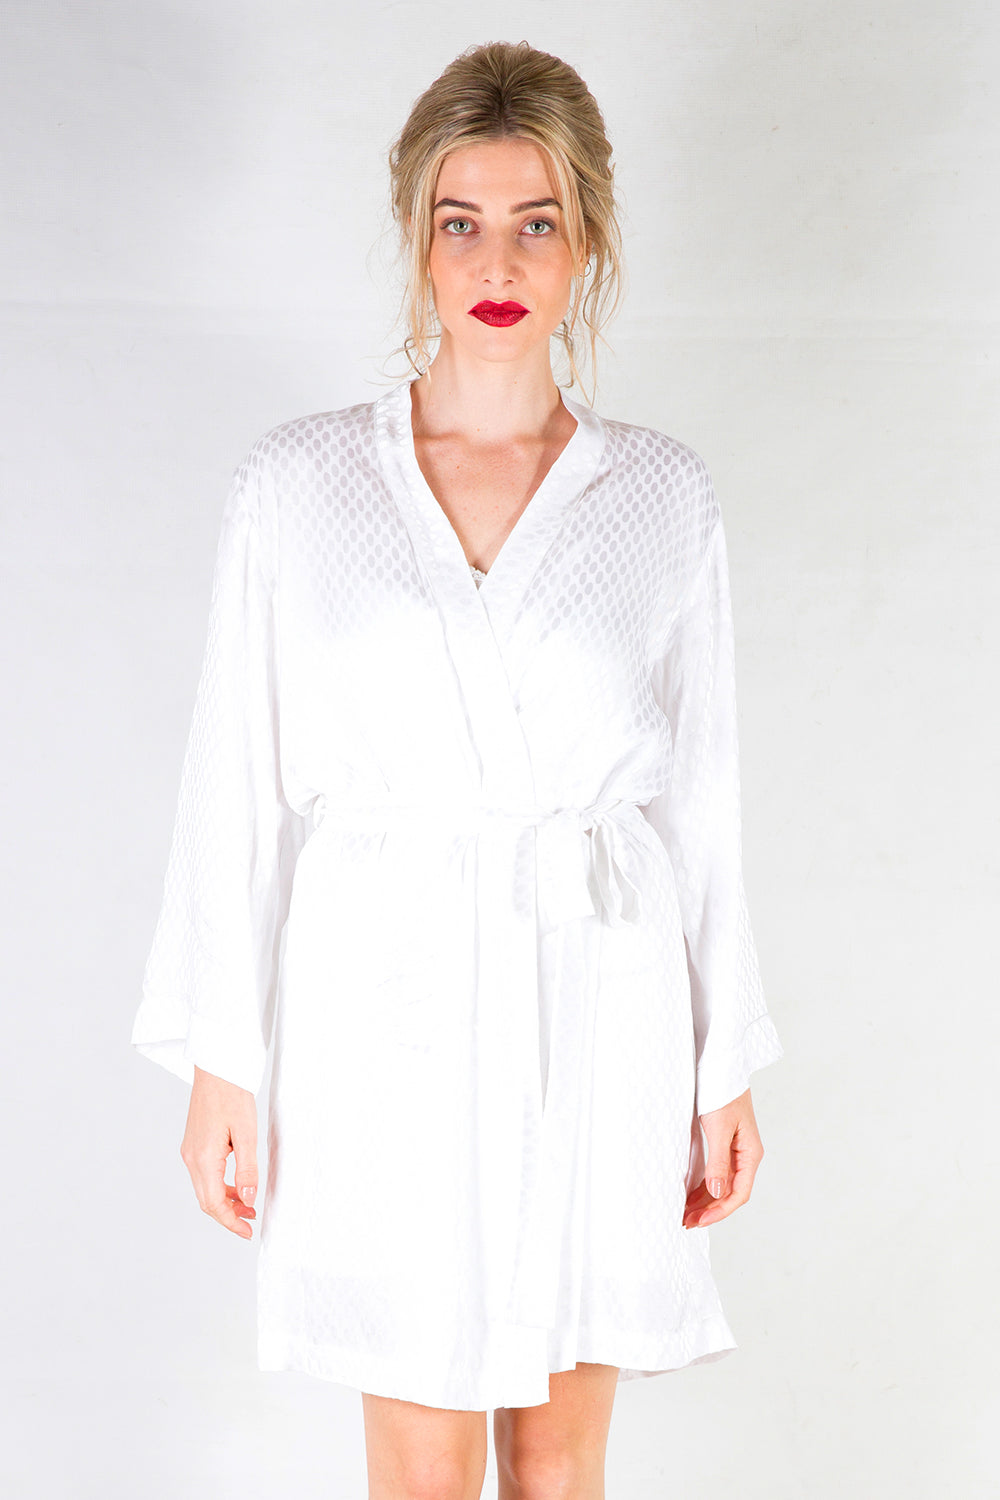 White Robe | Undergarments | Kimono sleeve | Kimono | Bridal Robe | New Zealand Fashion | Annah Stretton